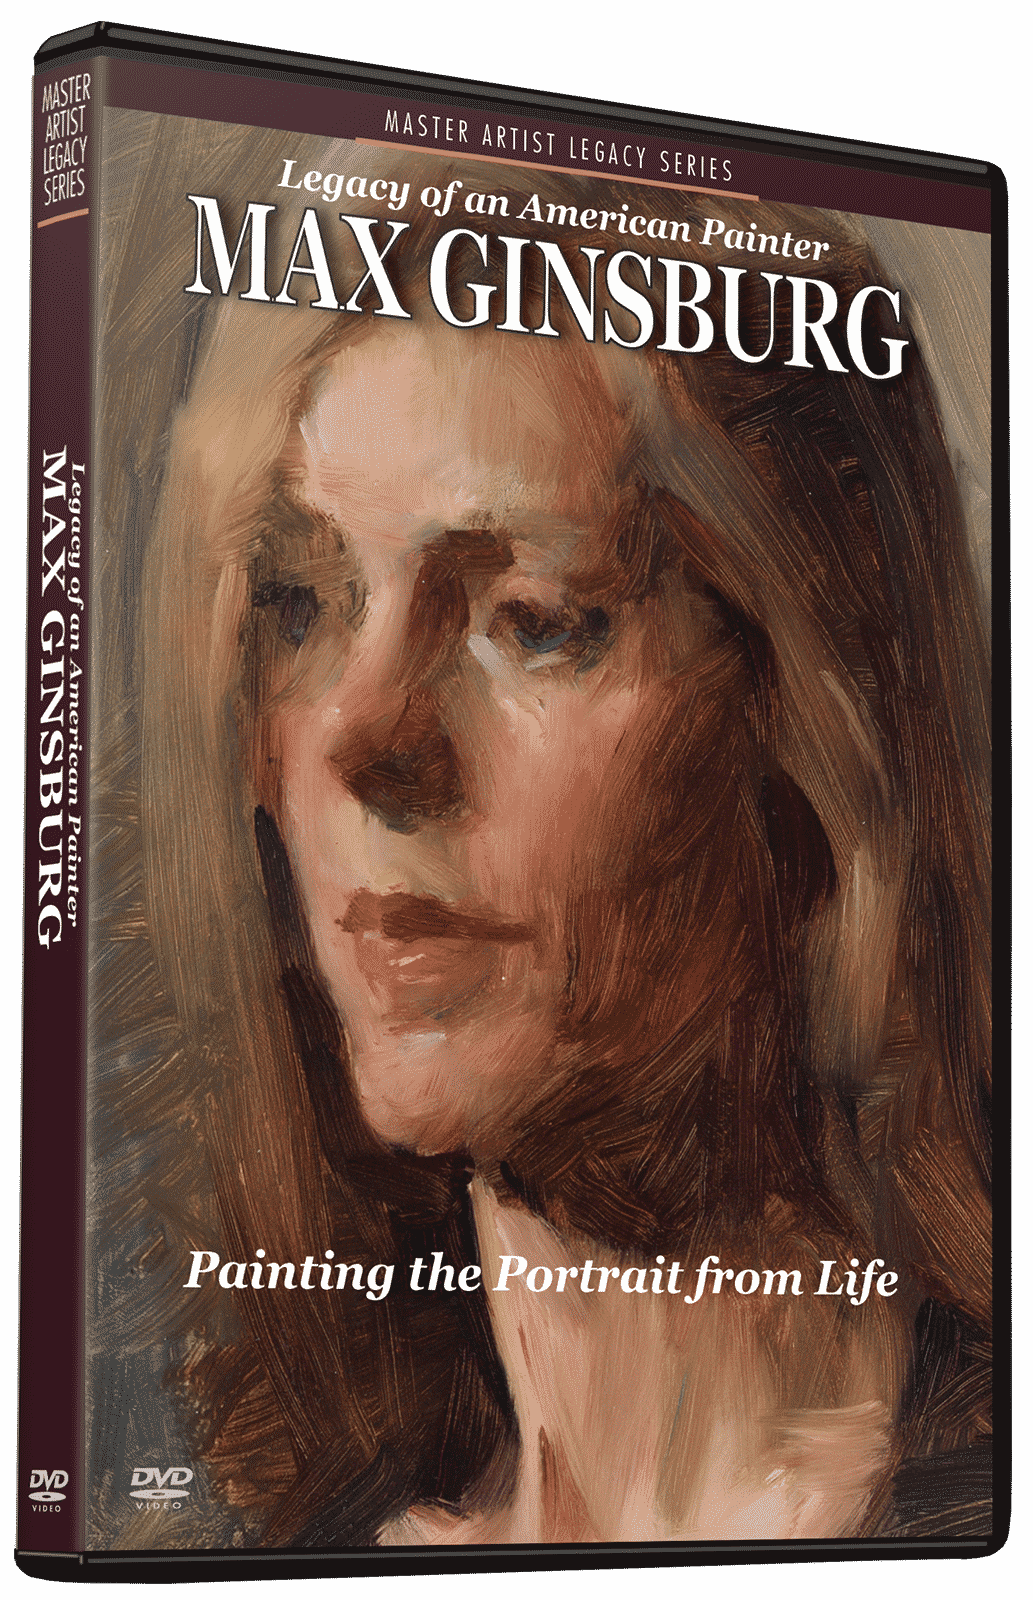 Max Ginsburg: The Legacy of an American Painter